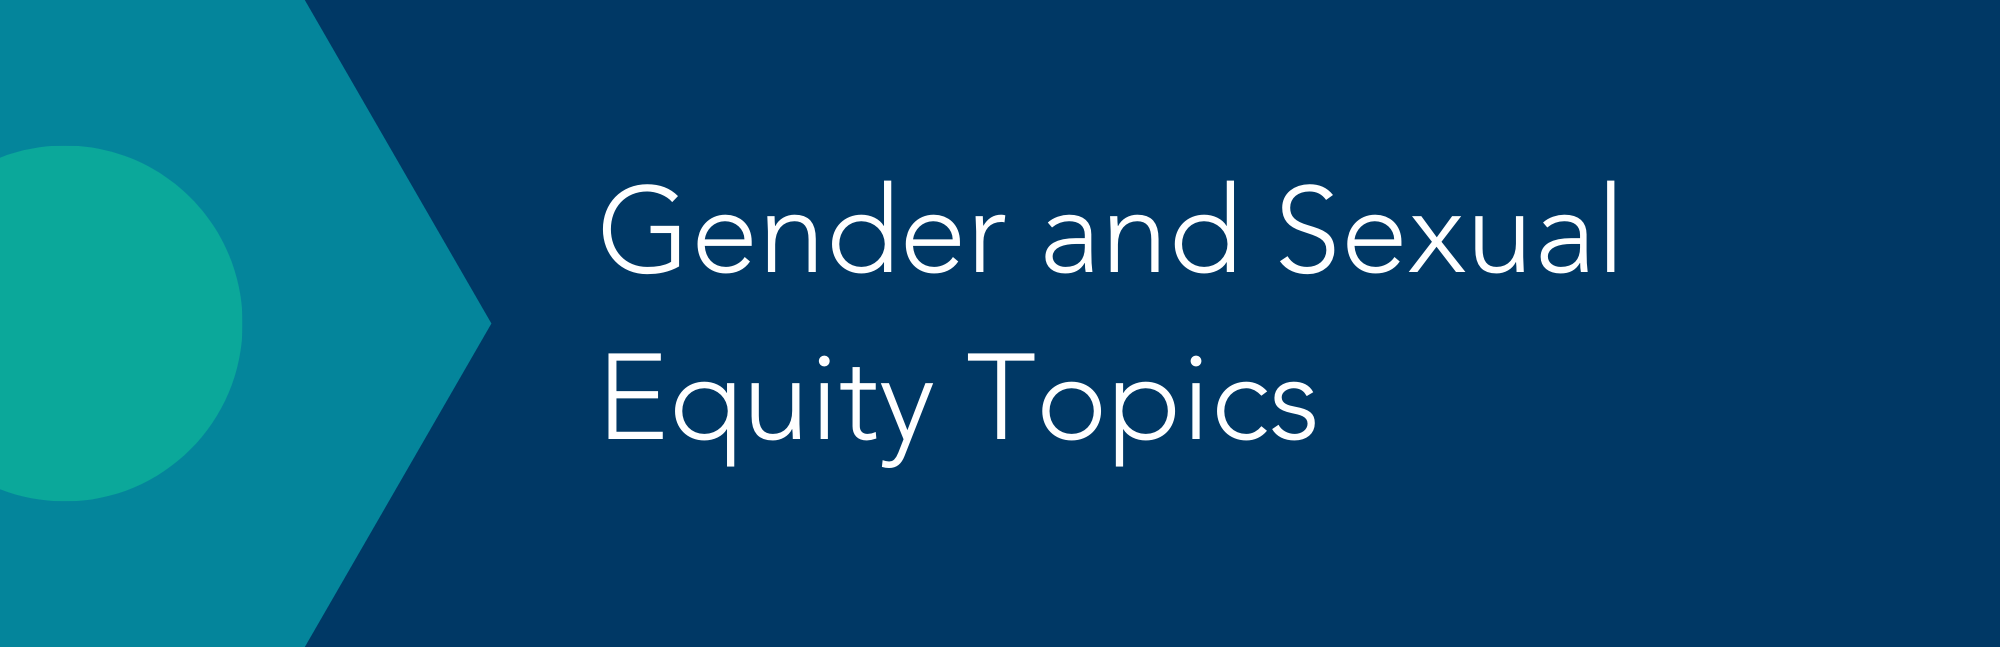 Gender & Sexual Equity Topics